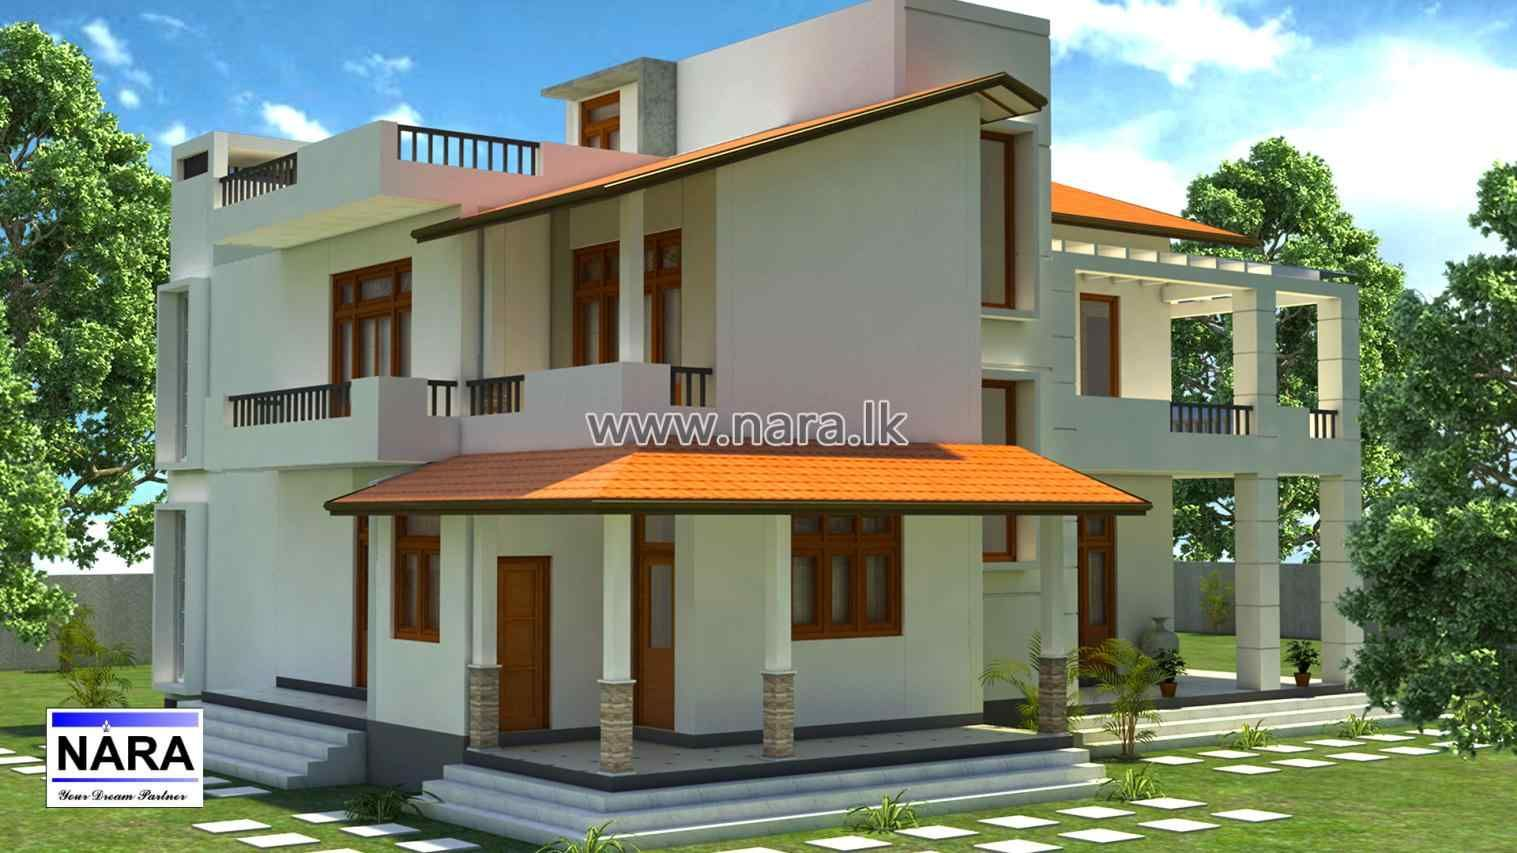 Roof Design In Sri Lanka Gallery Home Roof Ideas Roof Design